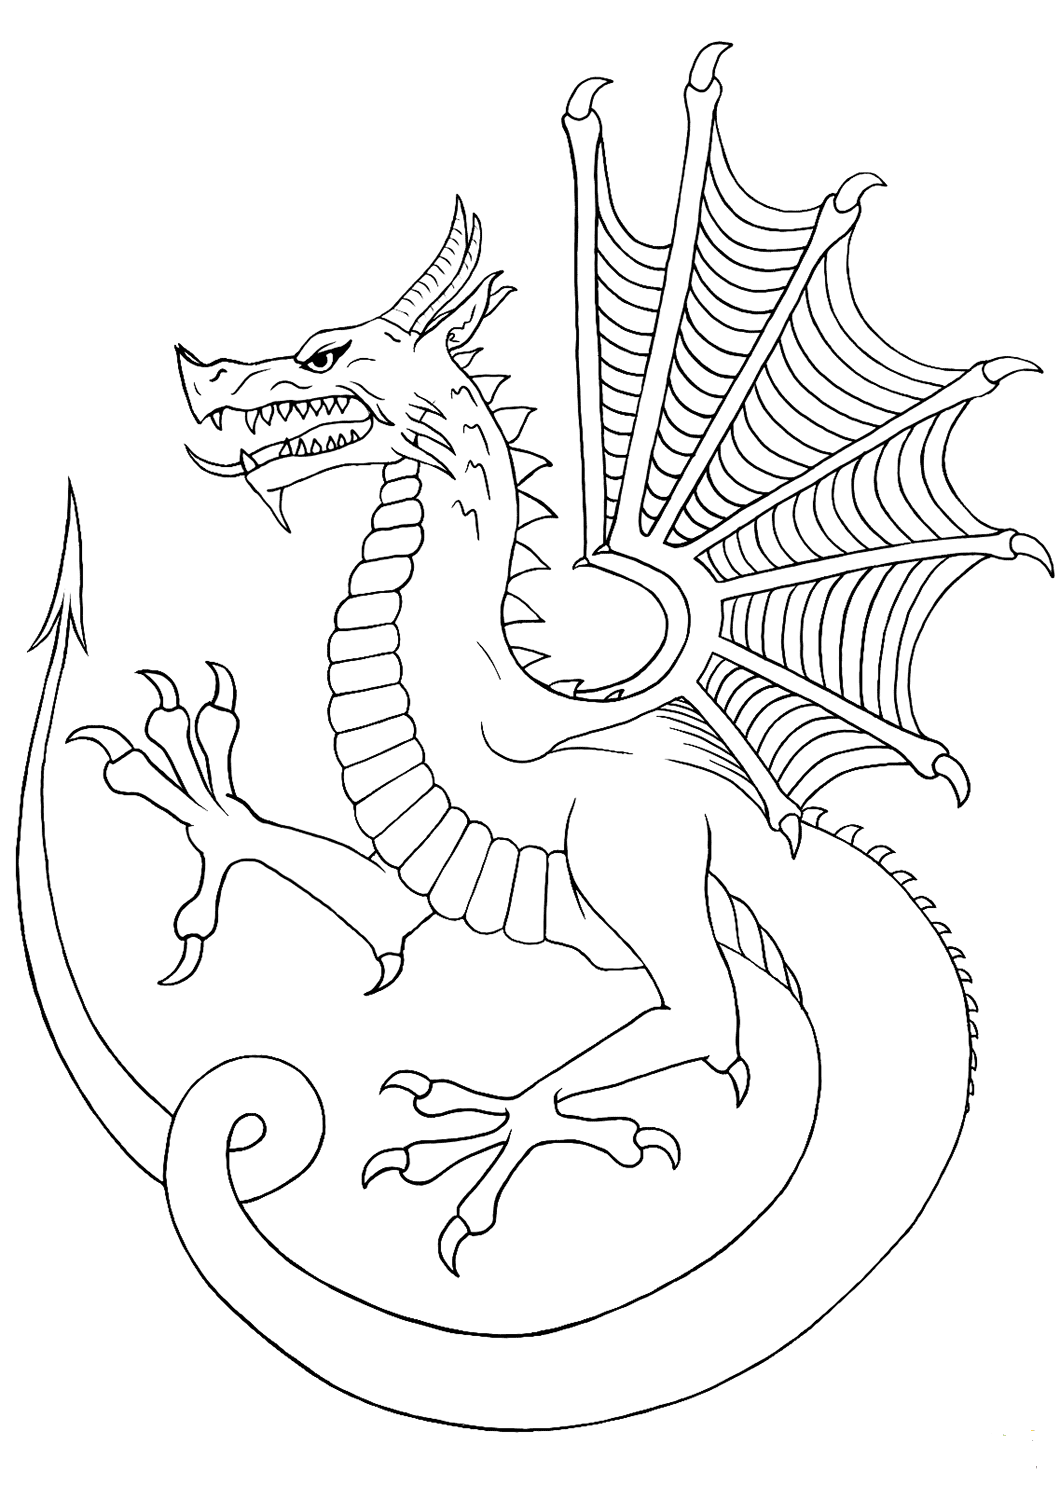 dragon colouring pictures 35 free printable dragon coloring pages dragon pictures colouring